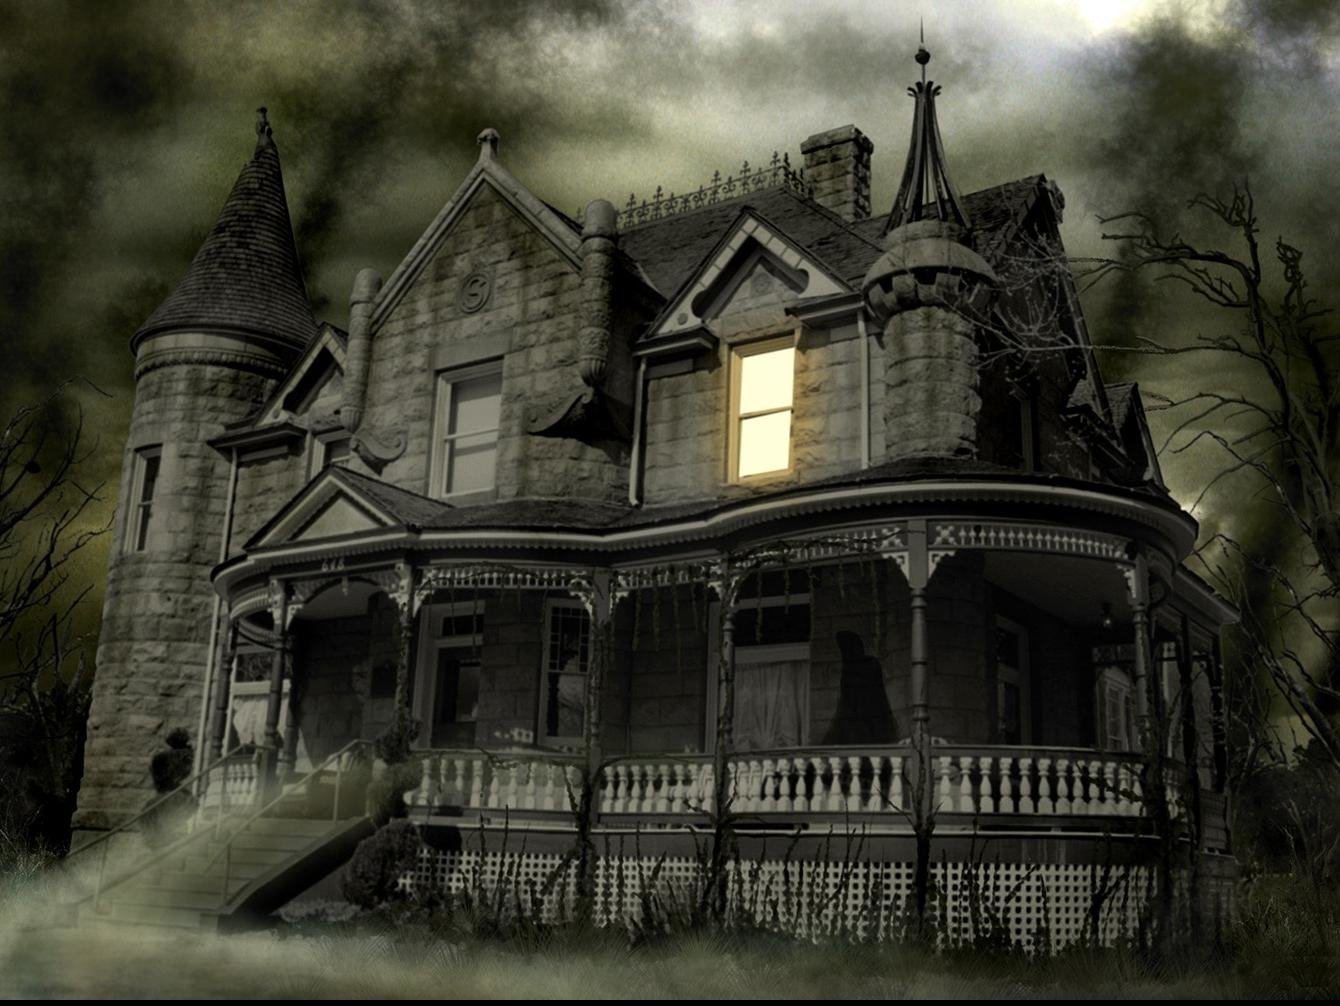 Haunted wallpaper and background image 1340x1006 id 238459 for Wallpaper with houses on